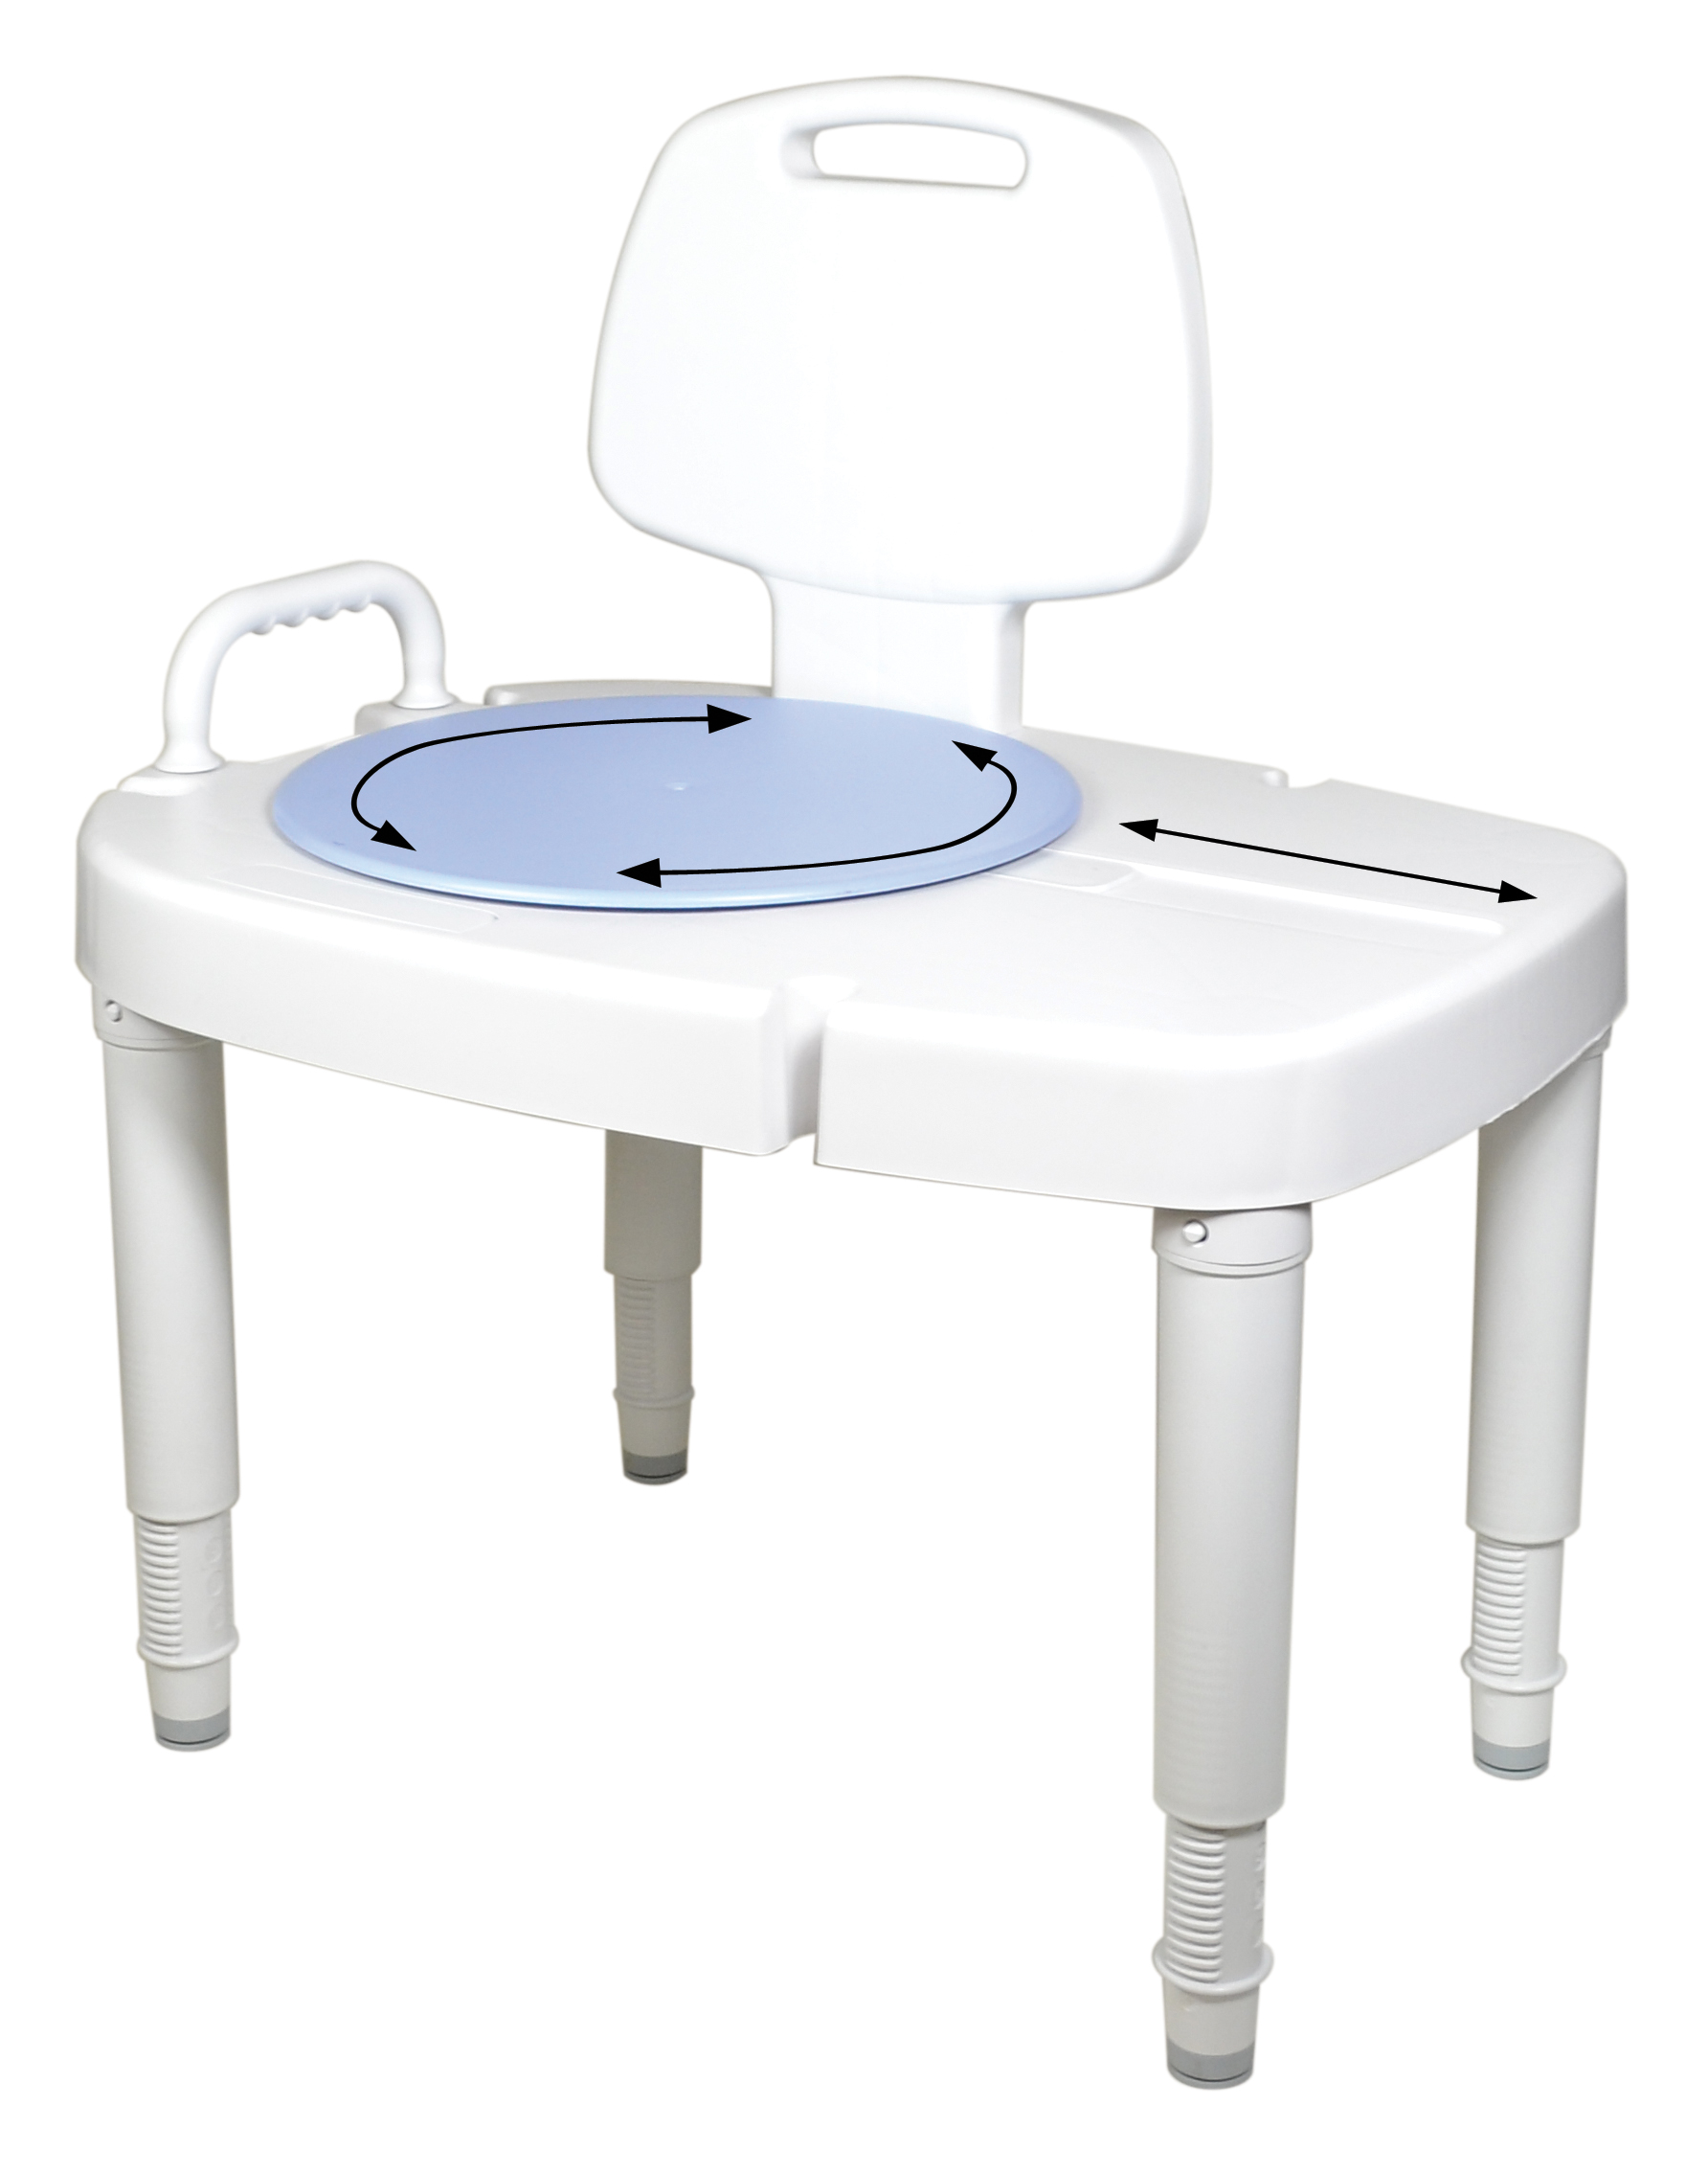 New Ableware® Sliding Rotating Transfer Bench Makes the Bathroom a ...